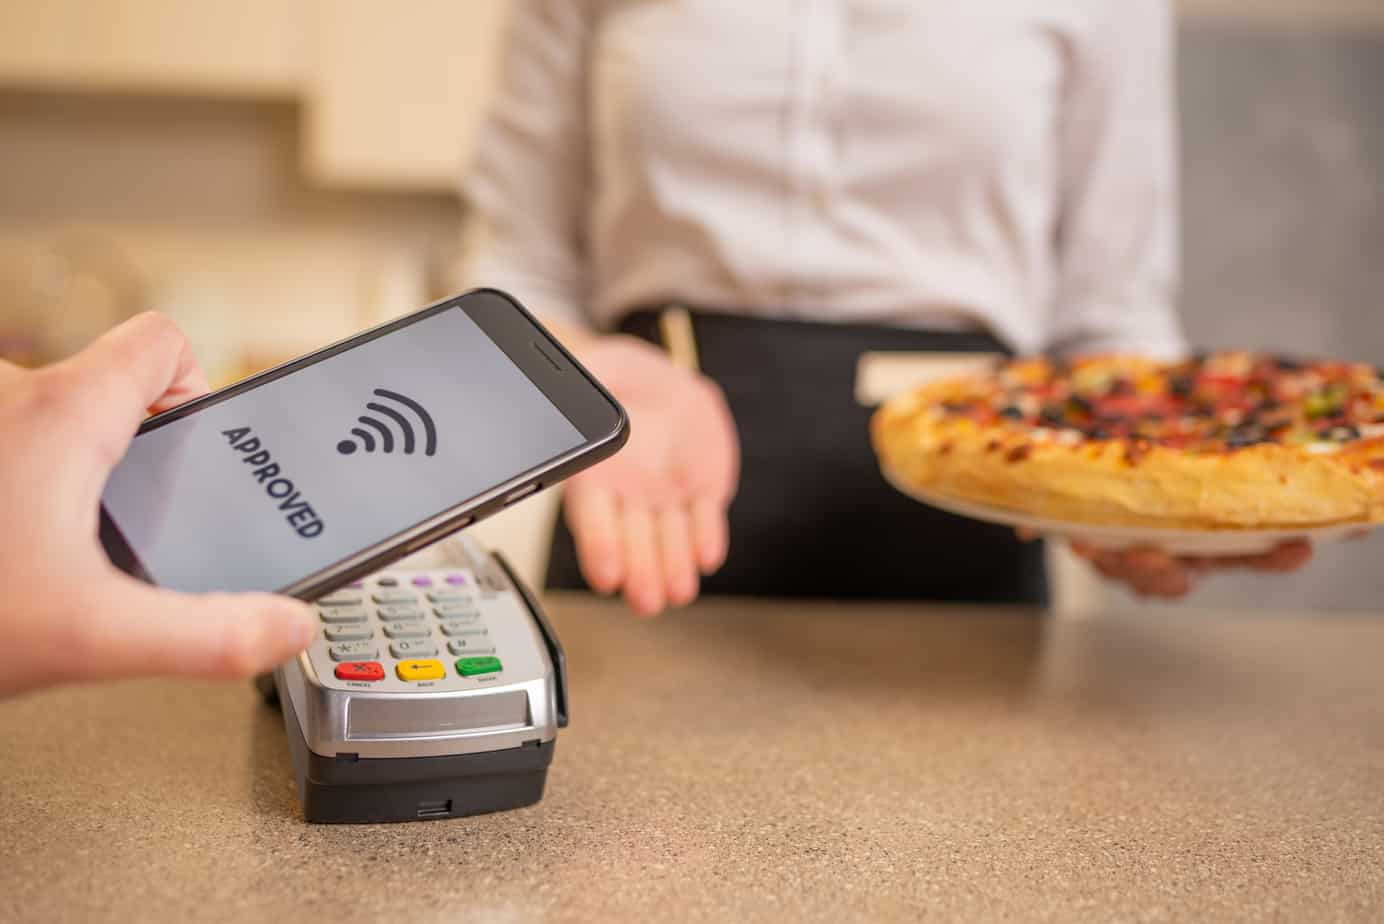 payment by contactless payment for pizza in a restaurant or cafe cashless payments banking services a new life according to the 190394627